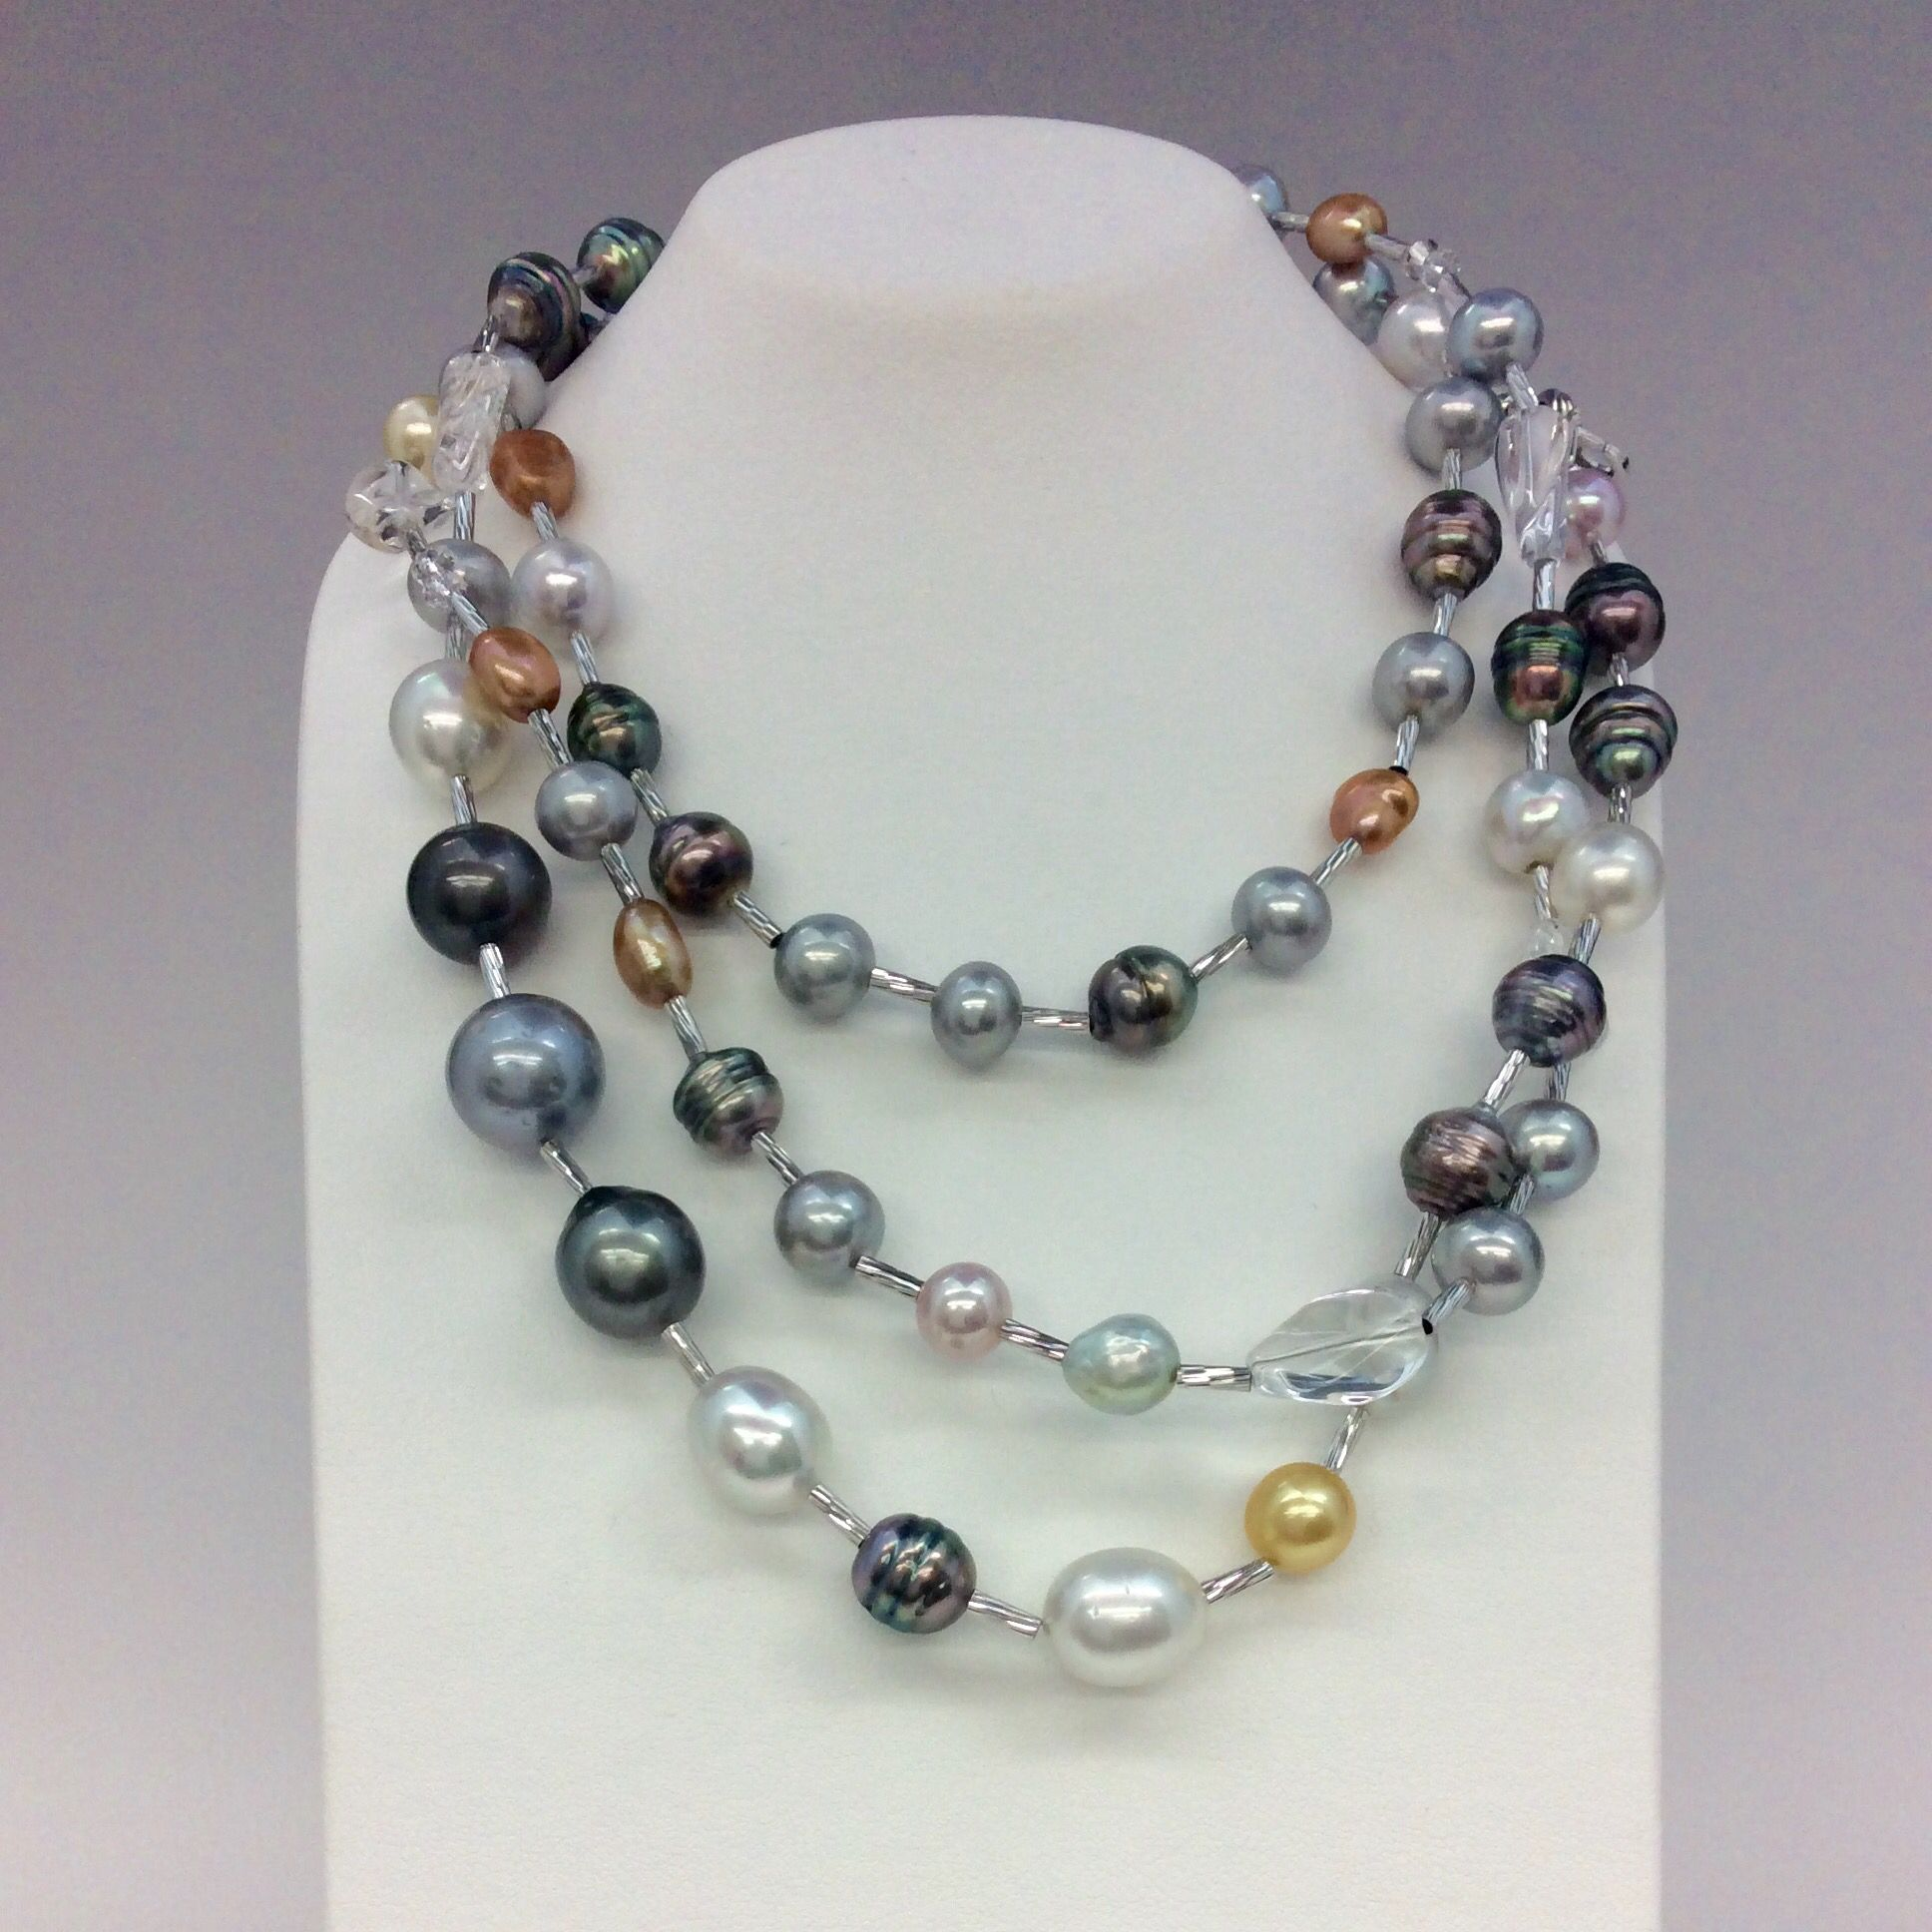 necklace aaa pearl x rearview green sterling grey pistachio true south tahitian silver dark pearls sea water whitegold